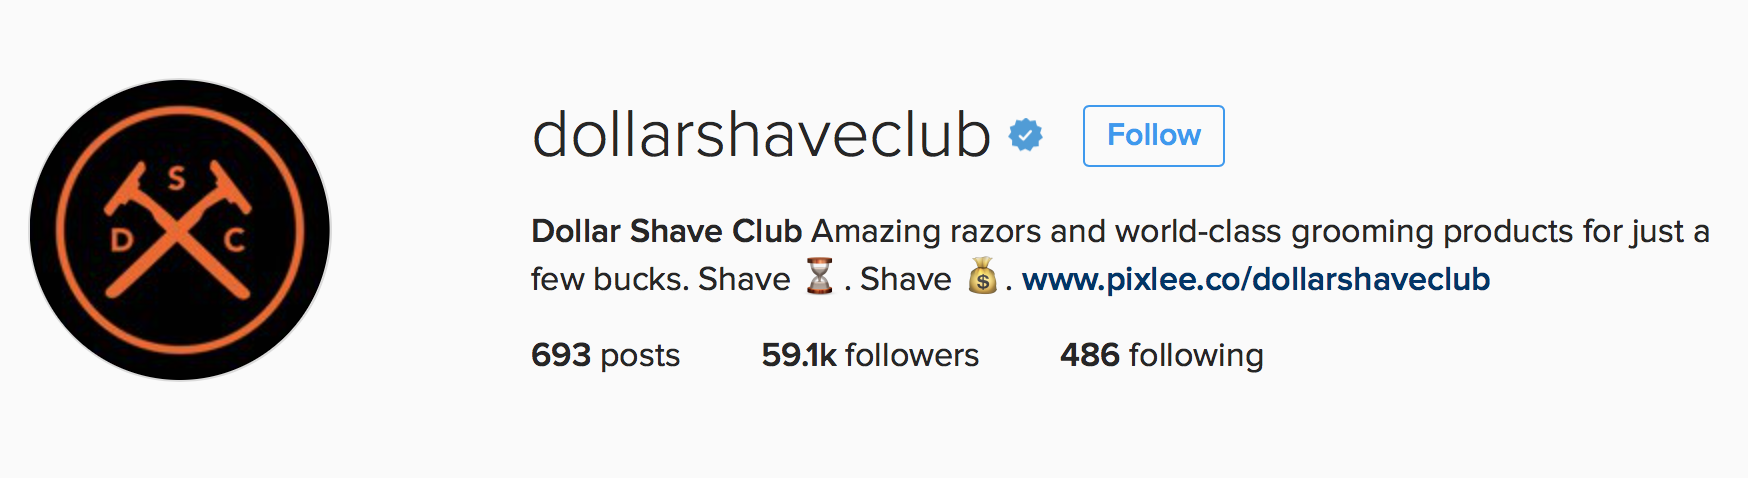 dollar shave club logo in Instagram profile